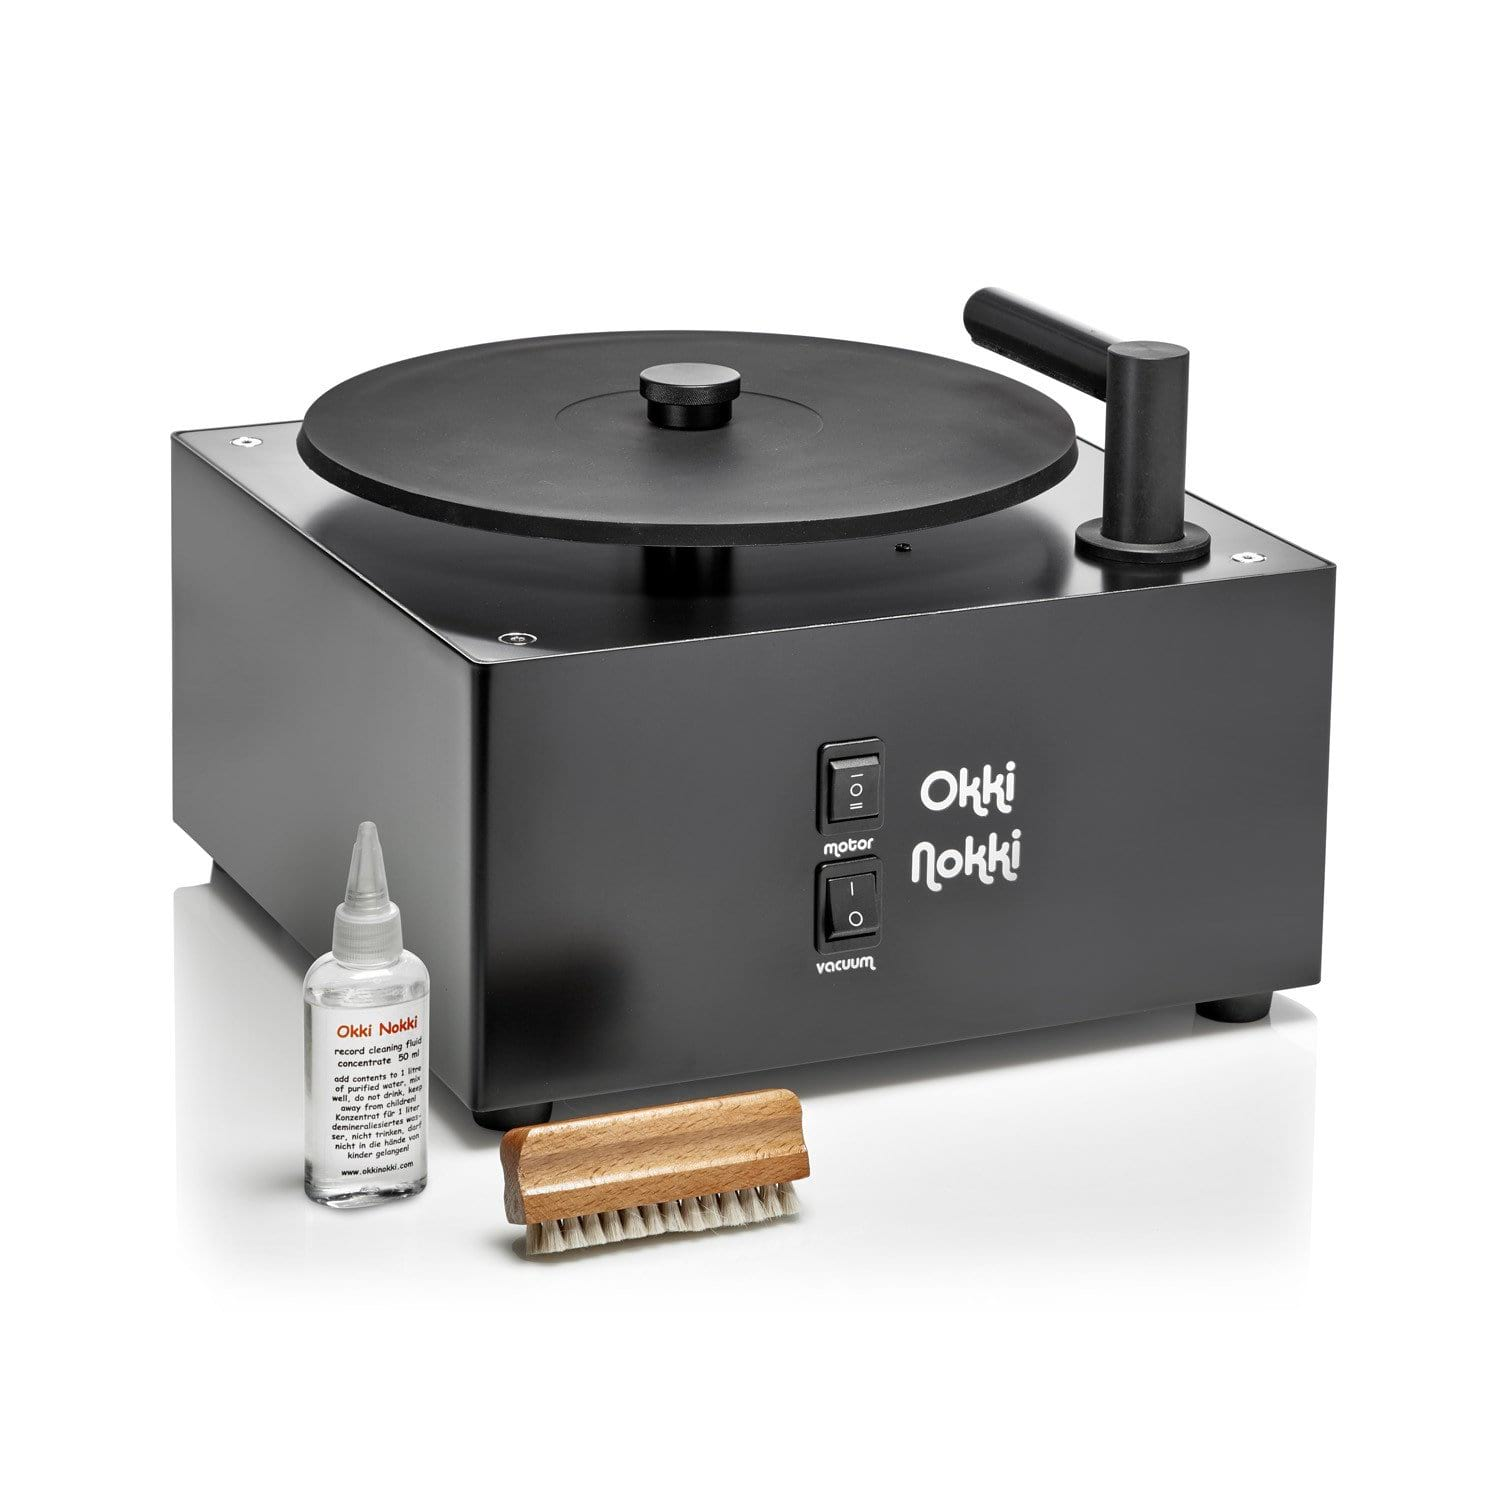 Okki Nokki Record Cleaning Machine-Record Cleaning Machine-Audio Den